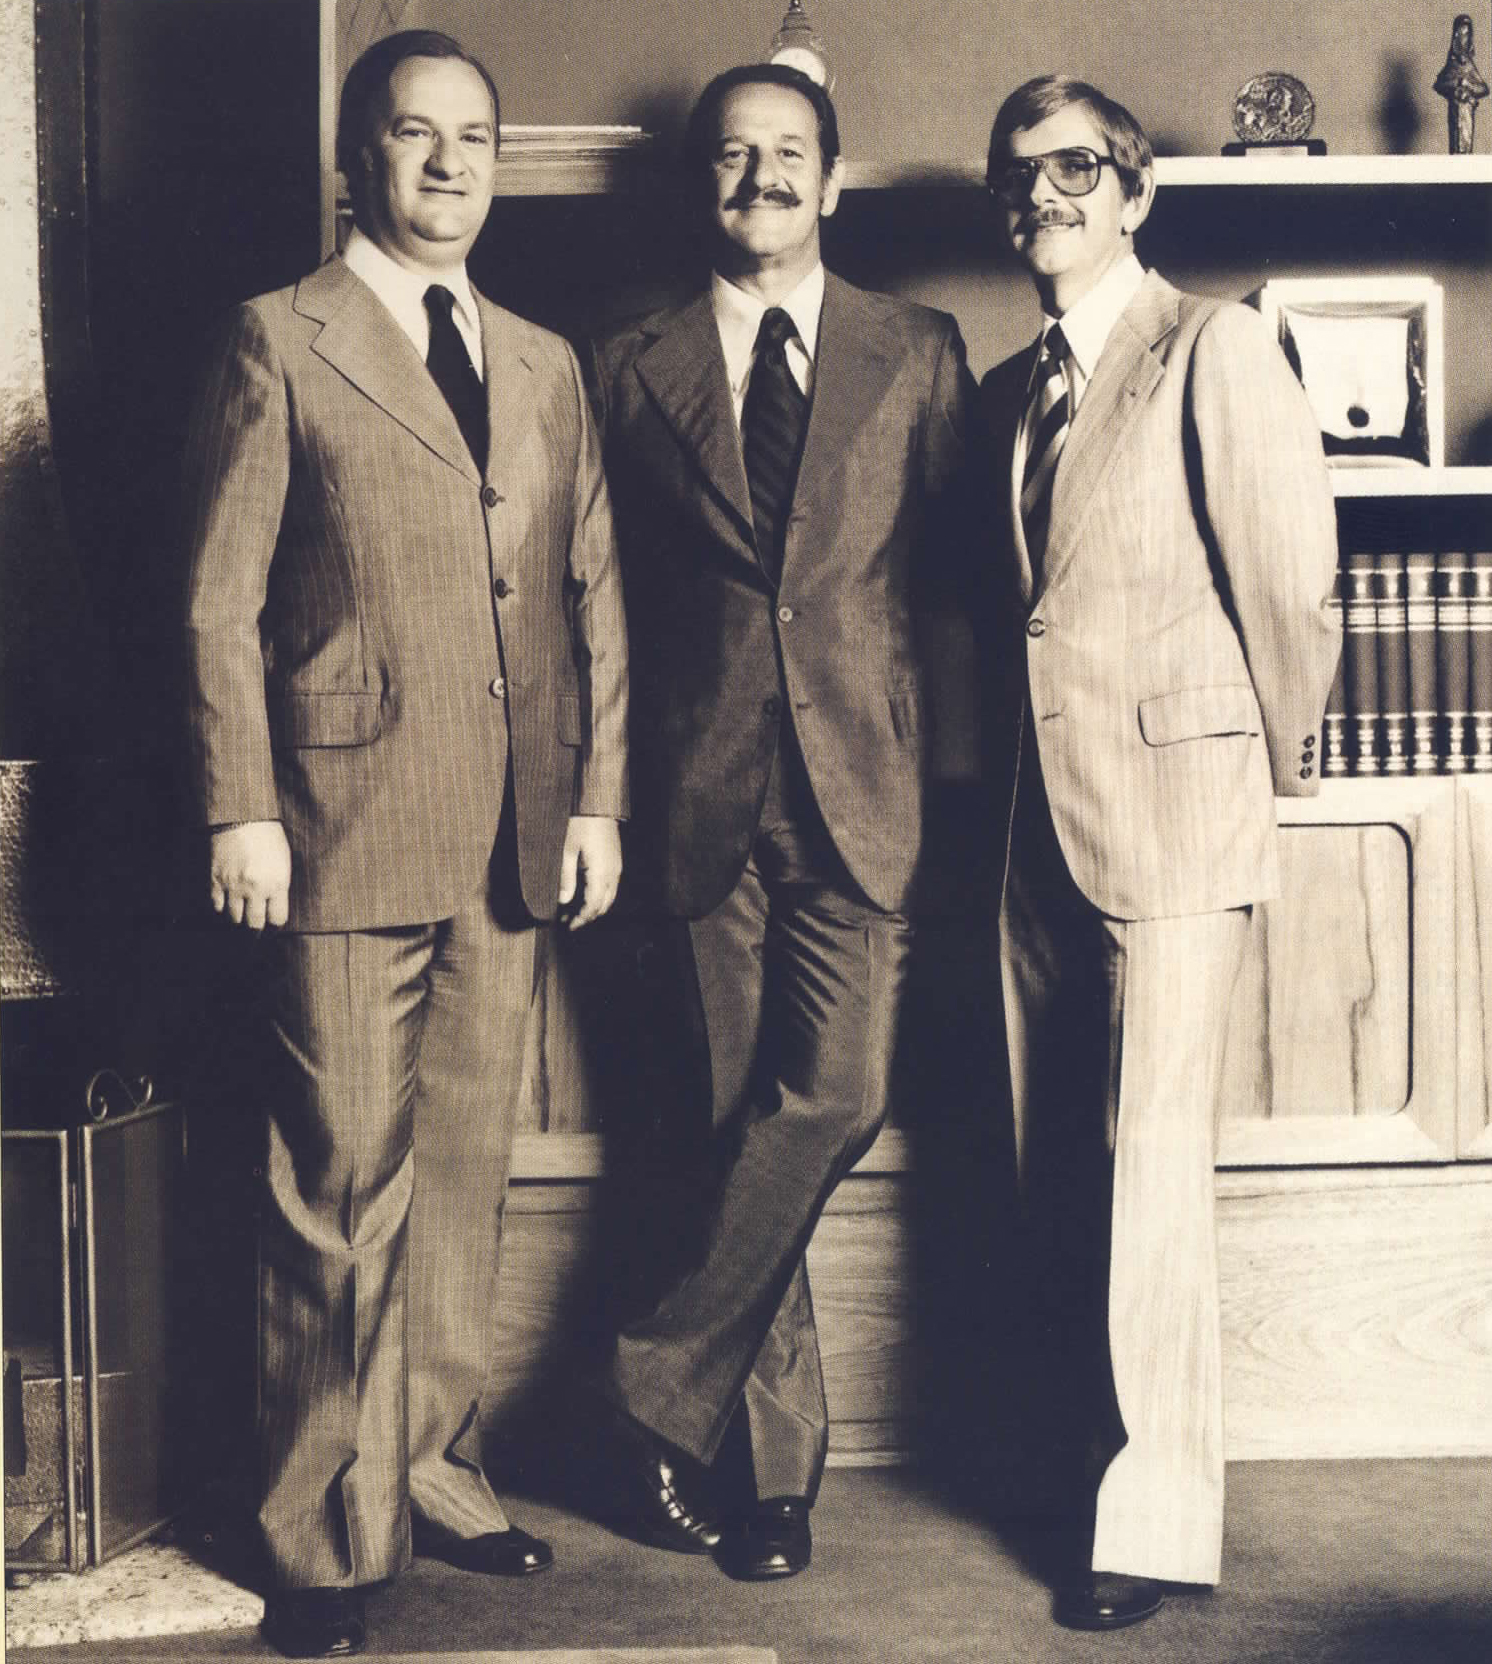 1968 - Fernando Ernesto Corrêa (RS) becomes Maurício's (C) and Jayme's (L) partner.